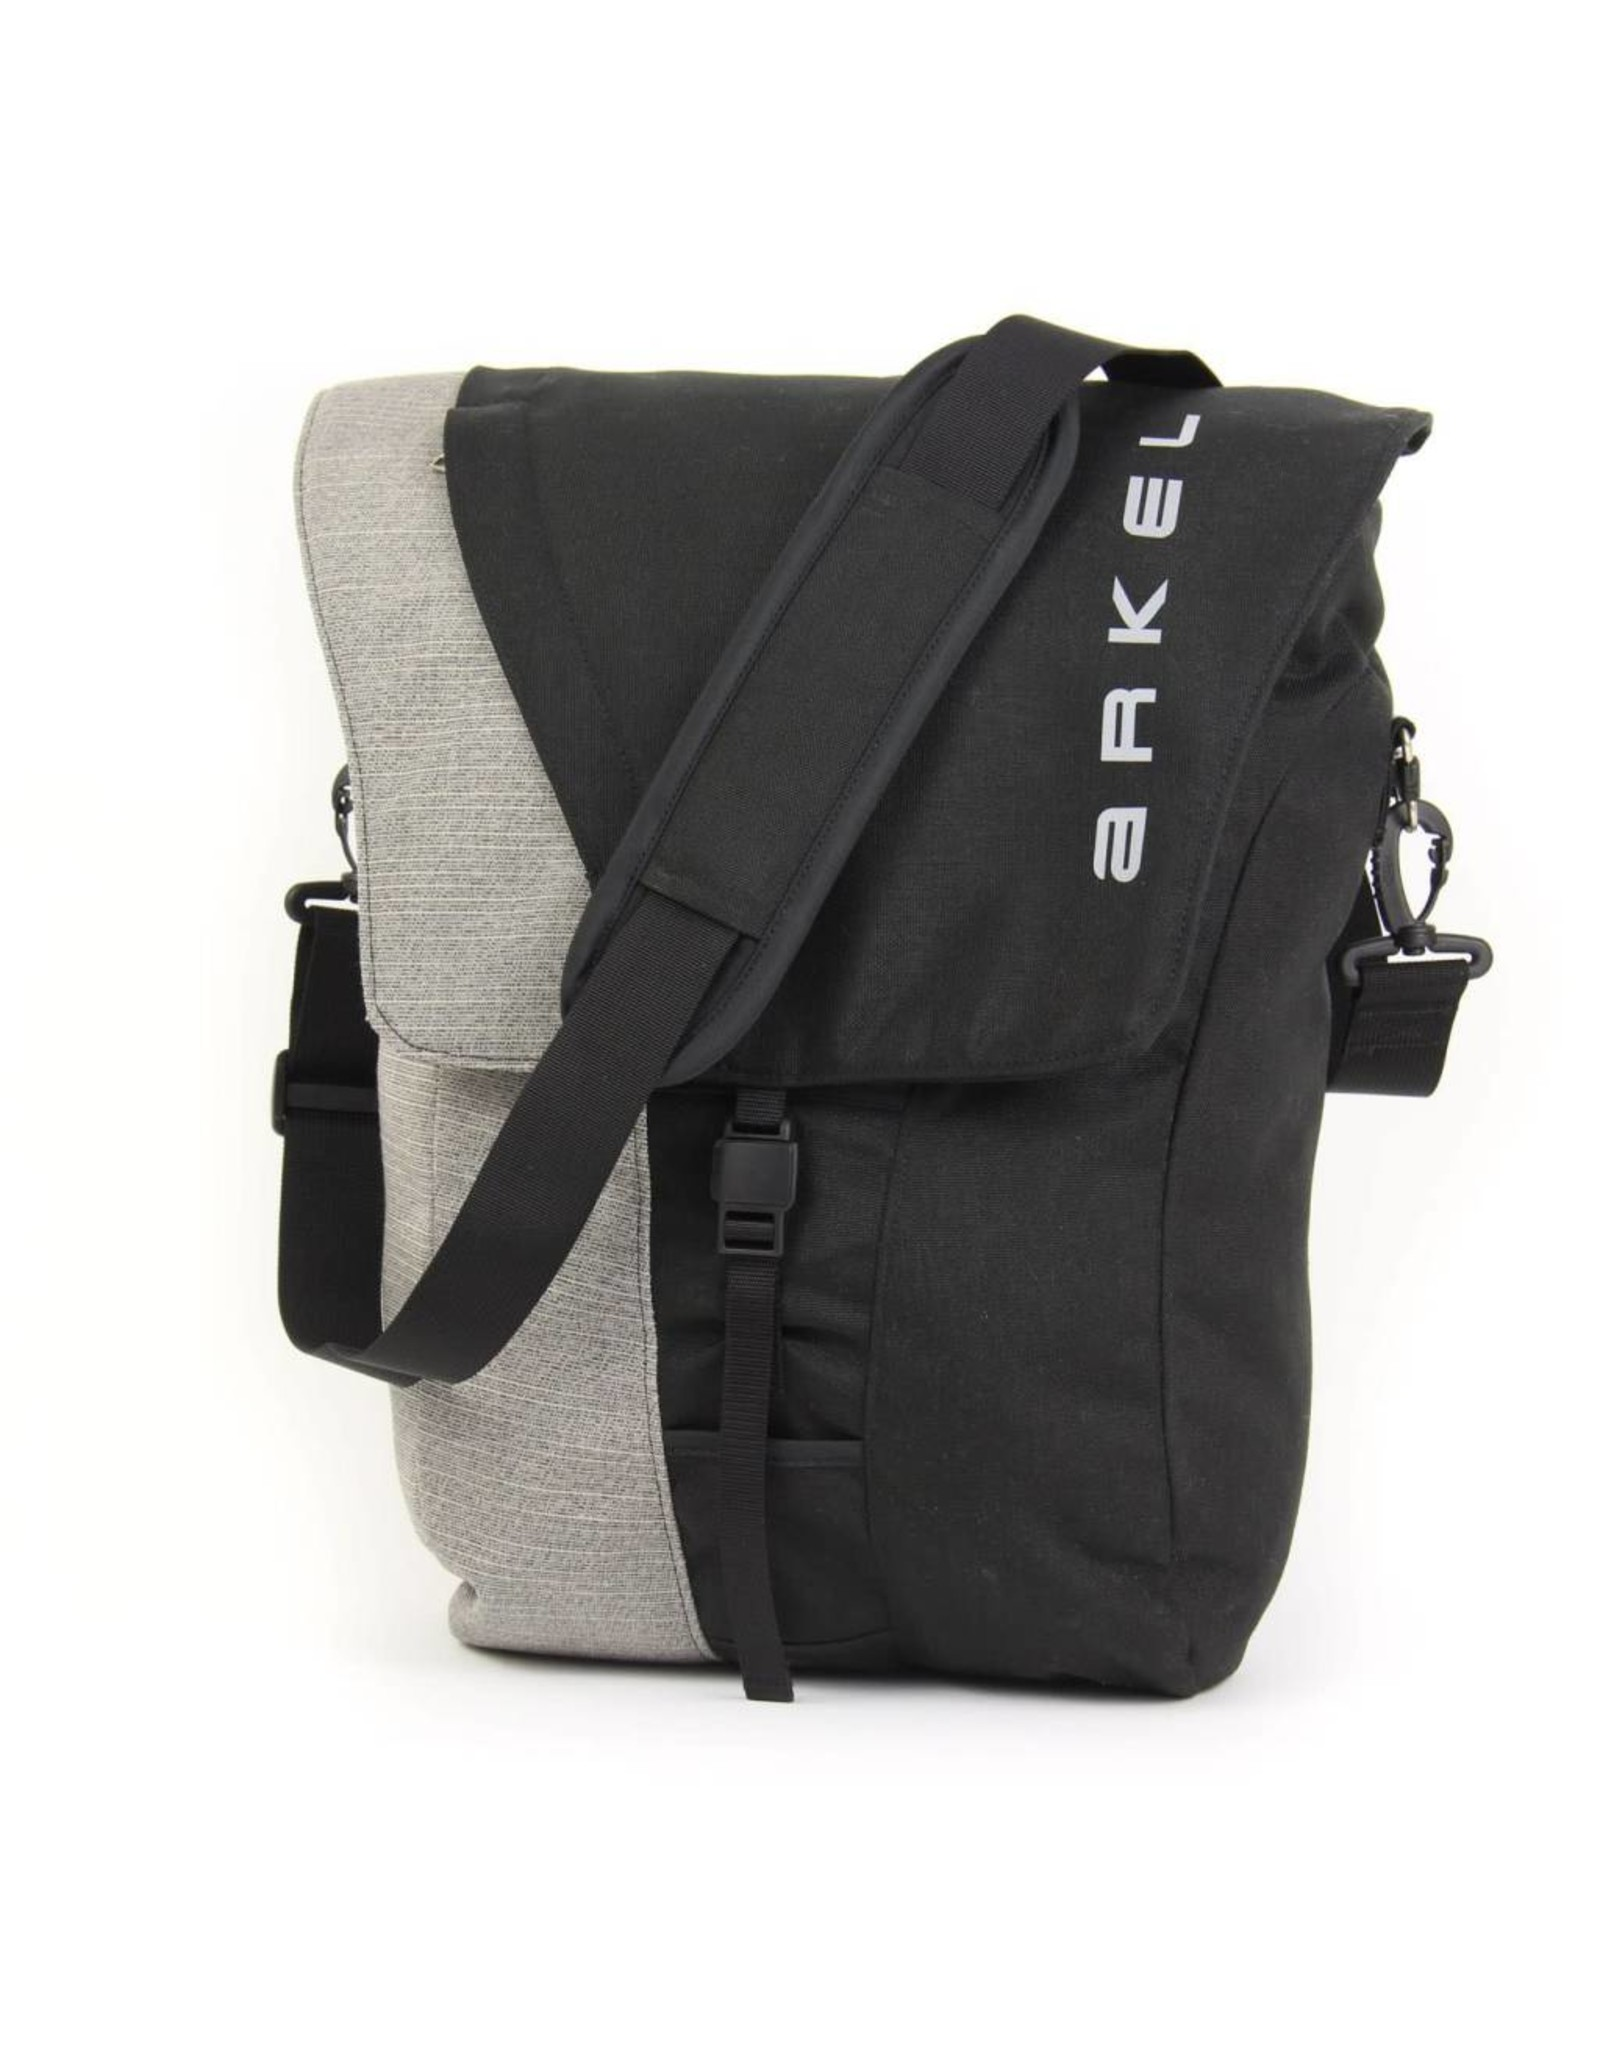 ARKEL Arkel The Commuter Black/Grey